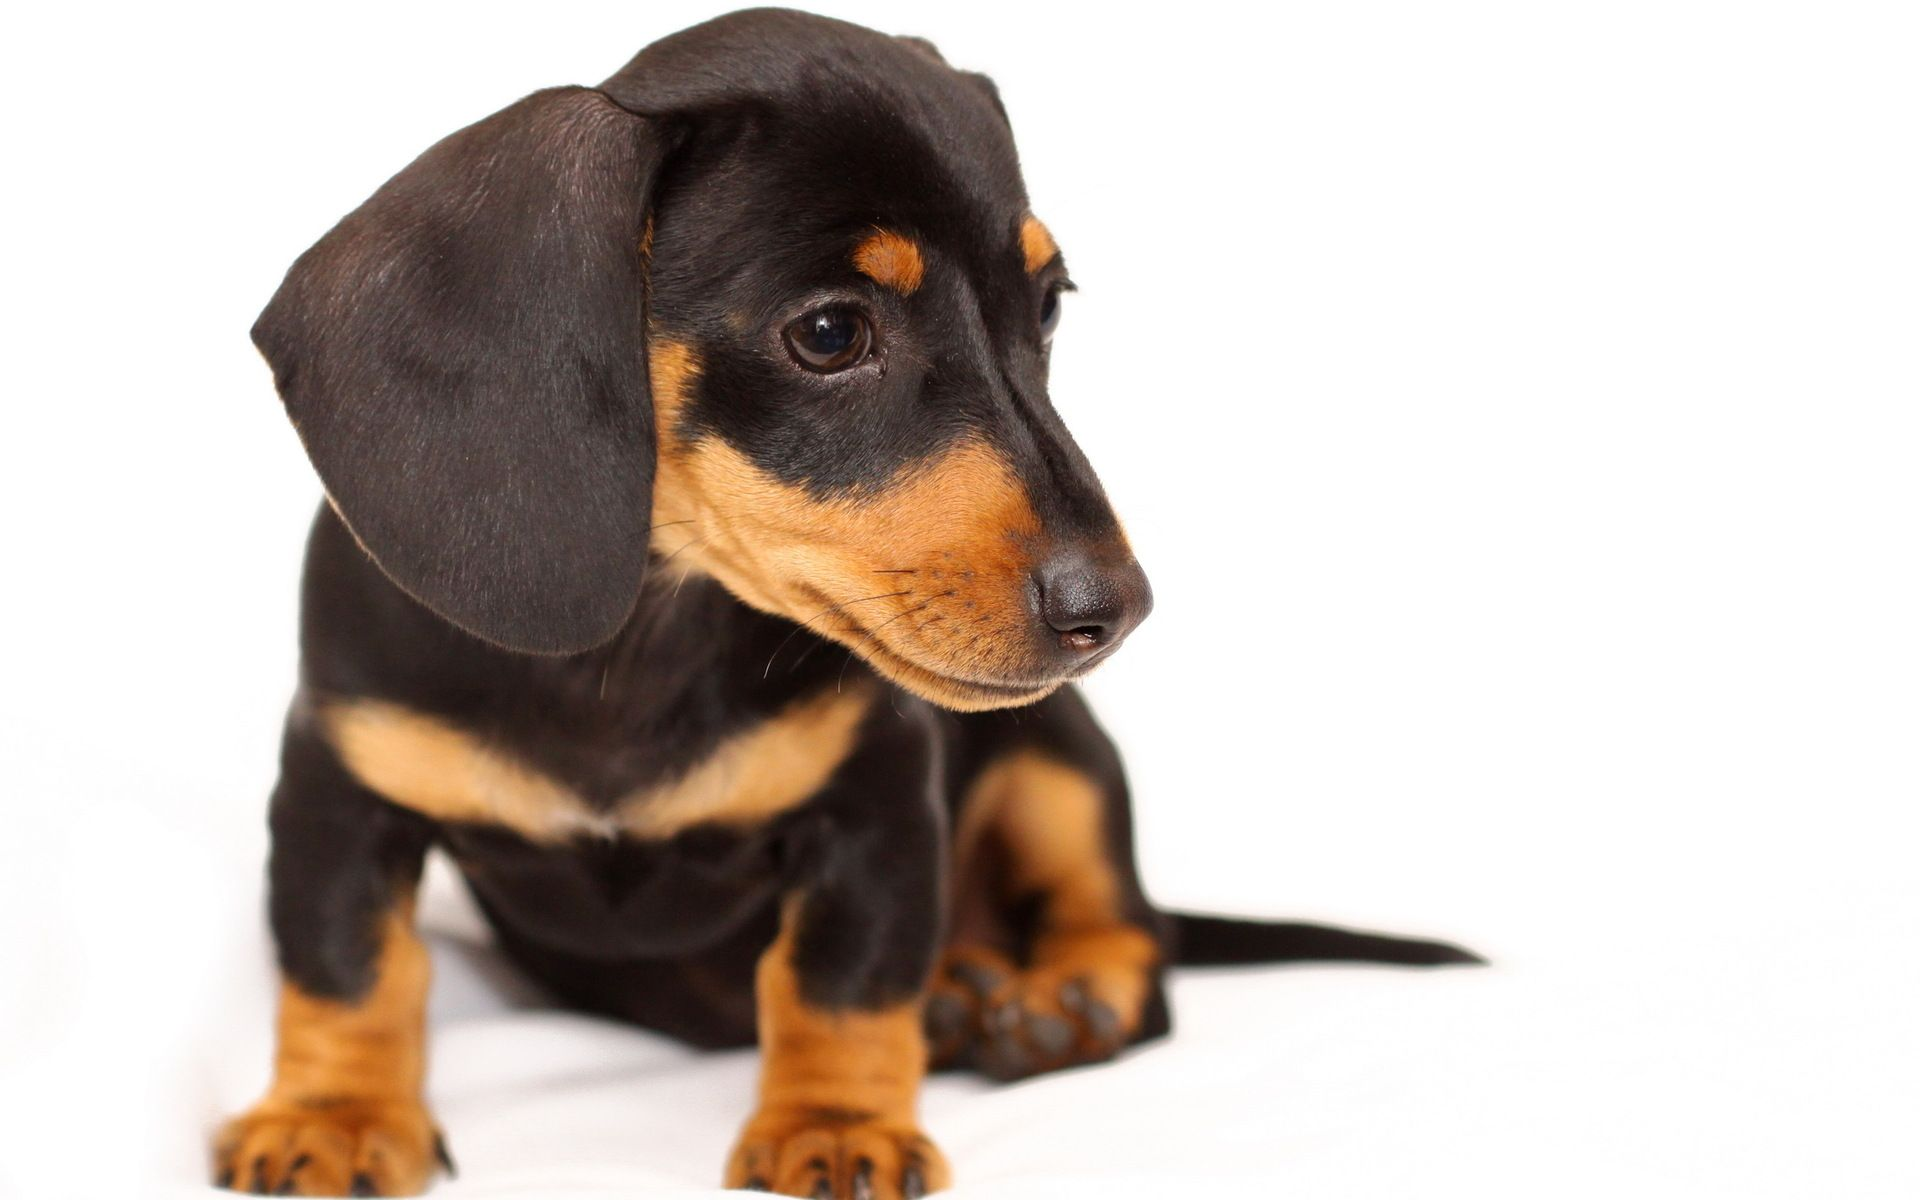 Pin By Christen Trammell On Dachshunds Doxie Puppies Dachshund